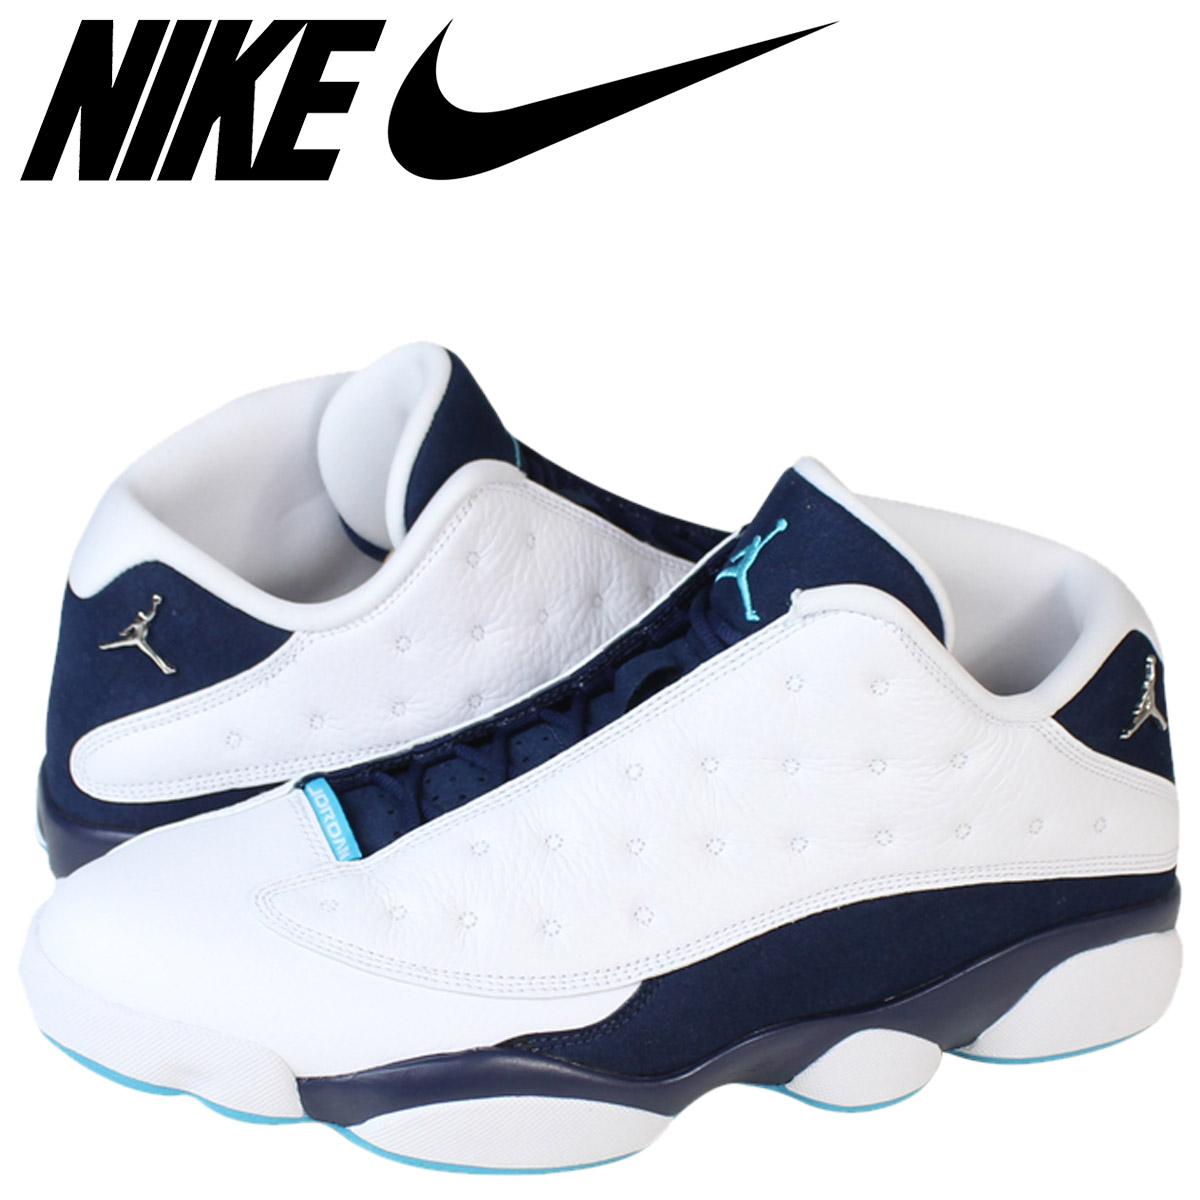 premium selection e9284 34ef7 Nike NIKE Air Jordan sneakers AIR JORDAN 13 RETRO LOW HORNETS Air Jordan 13  retro low Hornets 310810-107 white mens